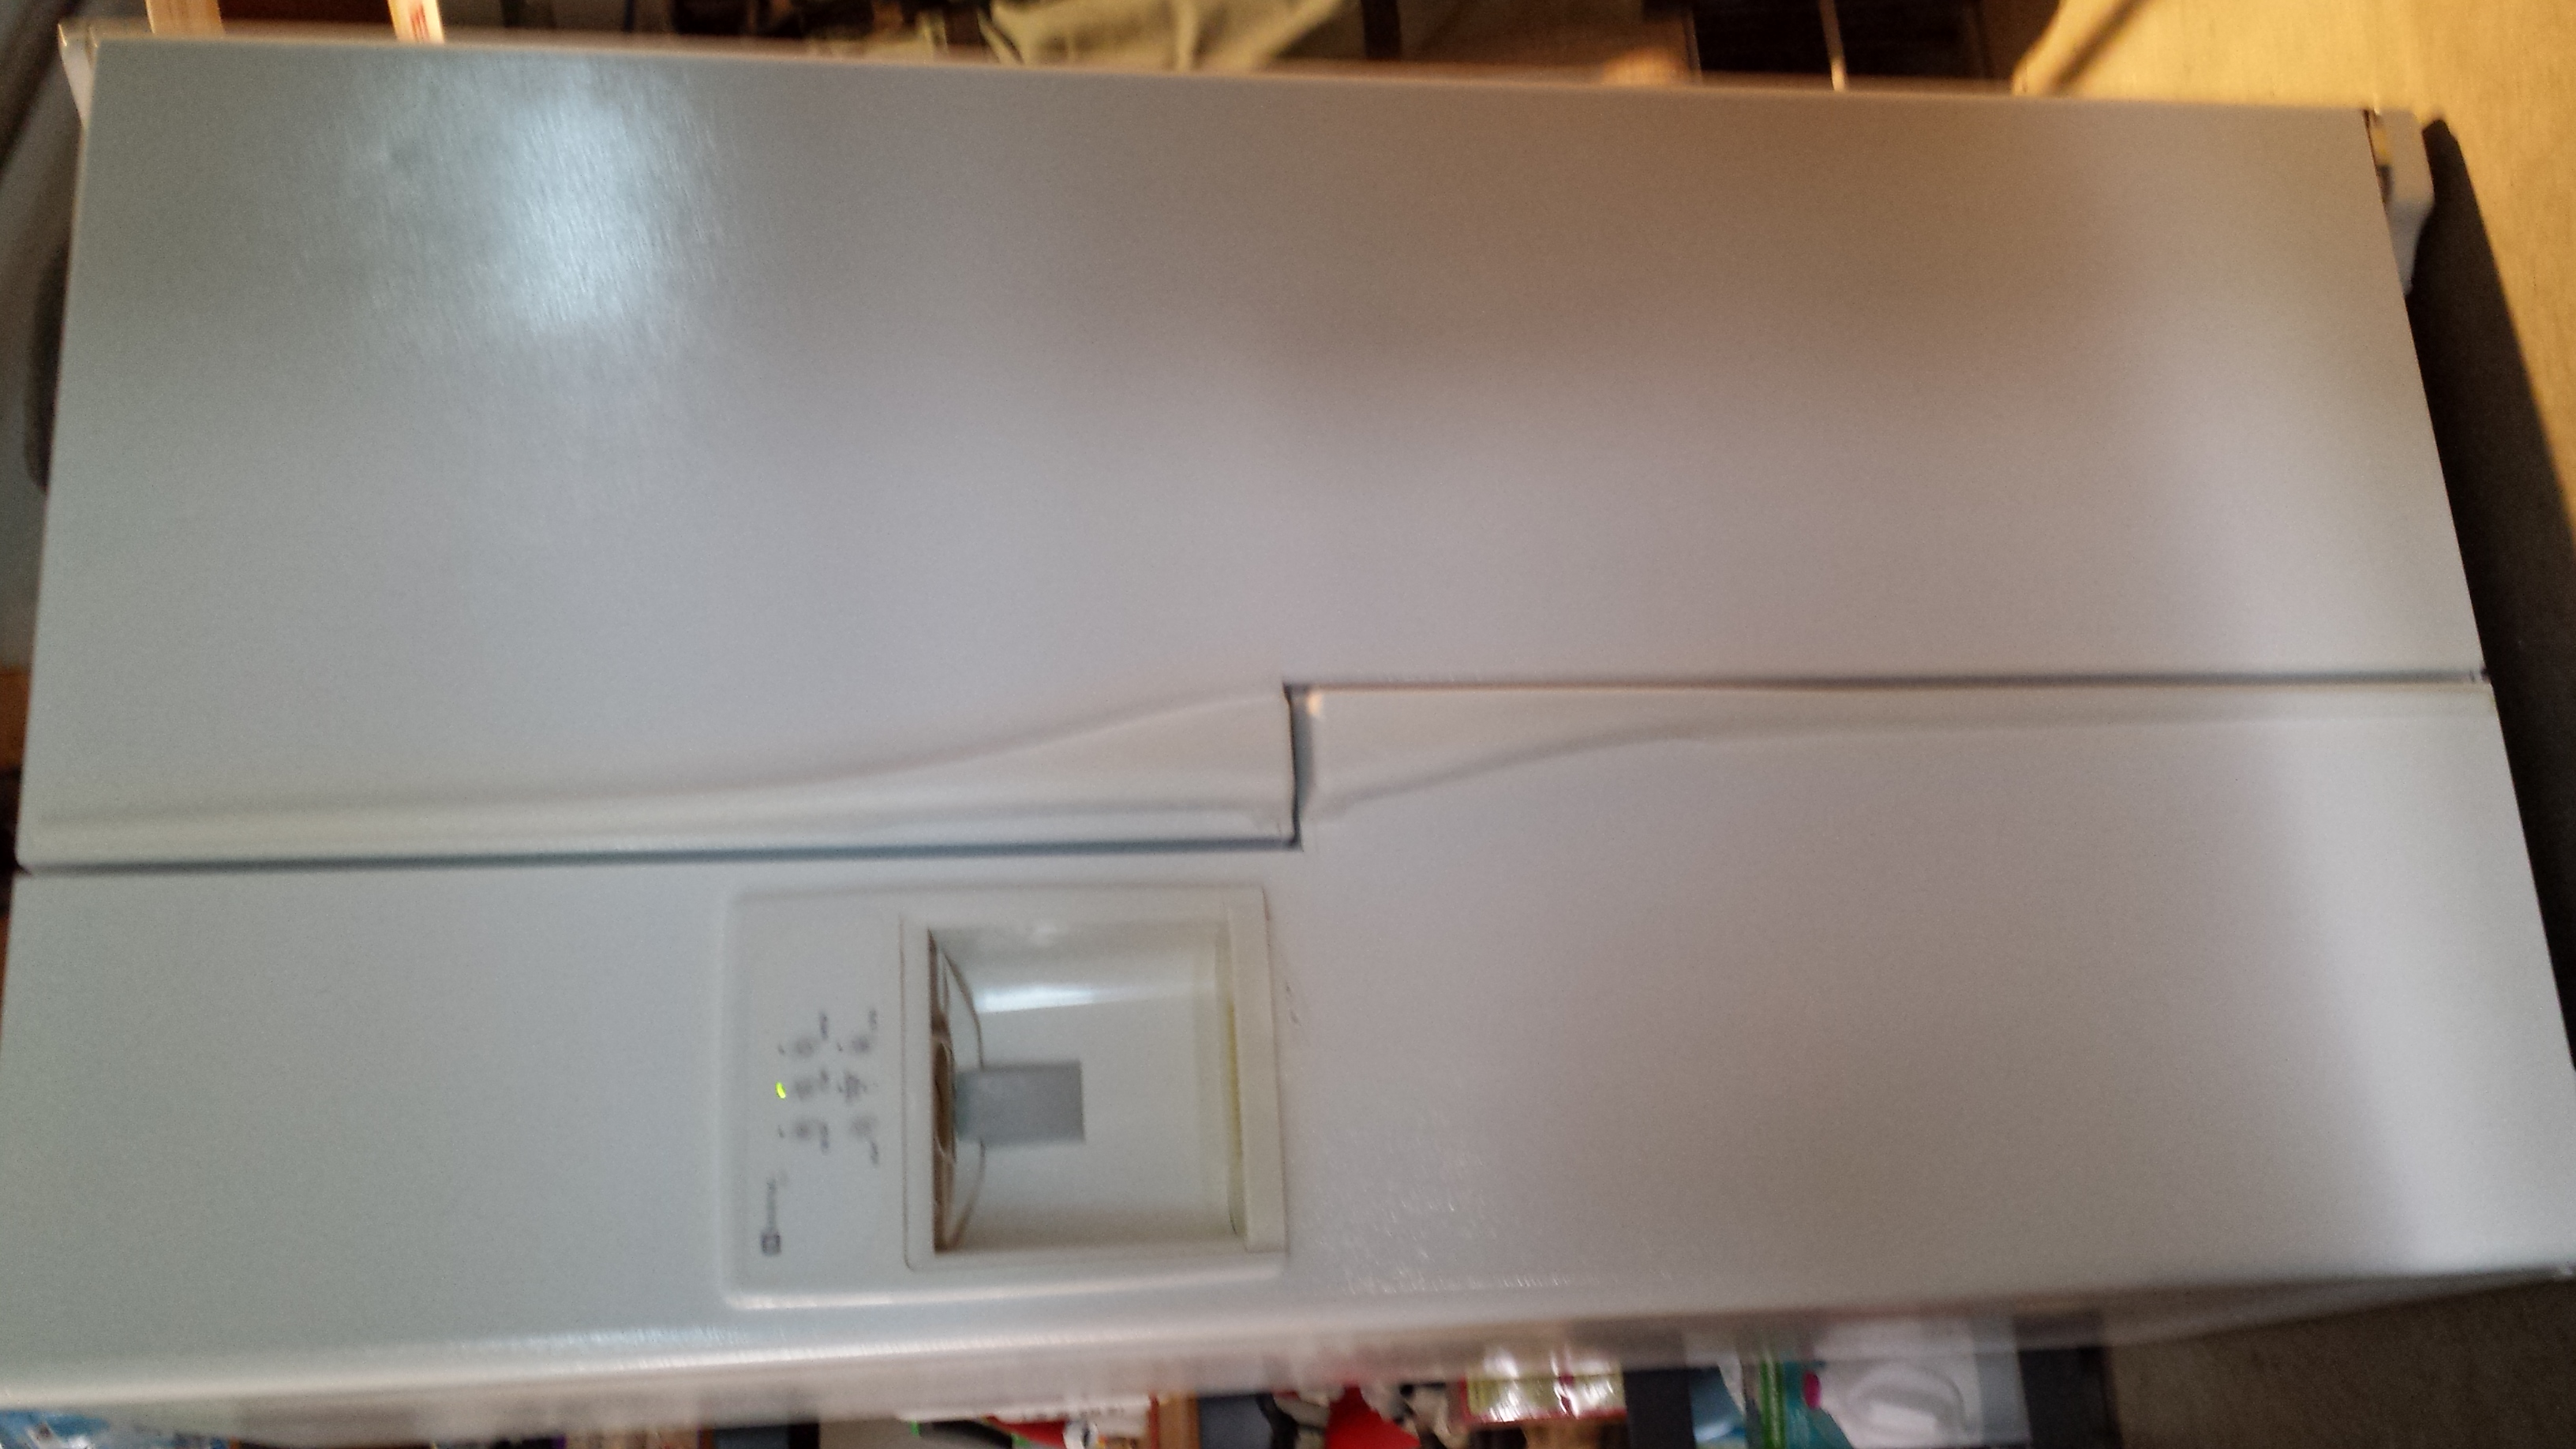 Maytag Wide-by-Side 26.8 cu.ft. white refrigerator/freezer